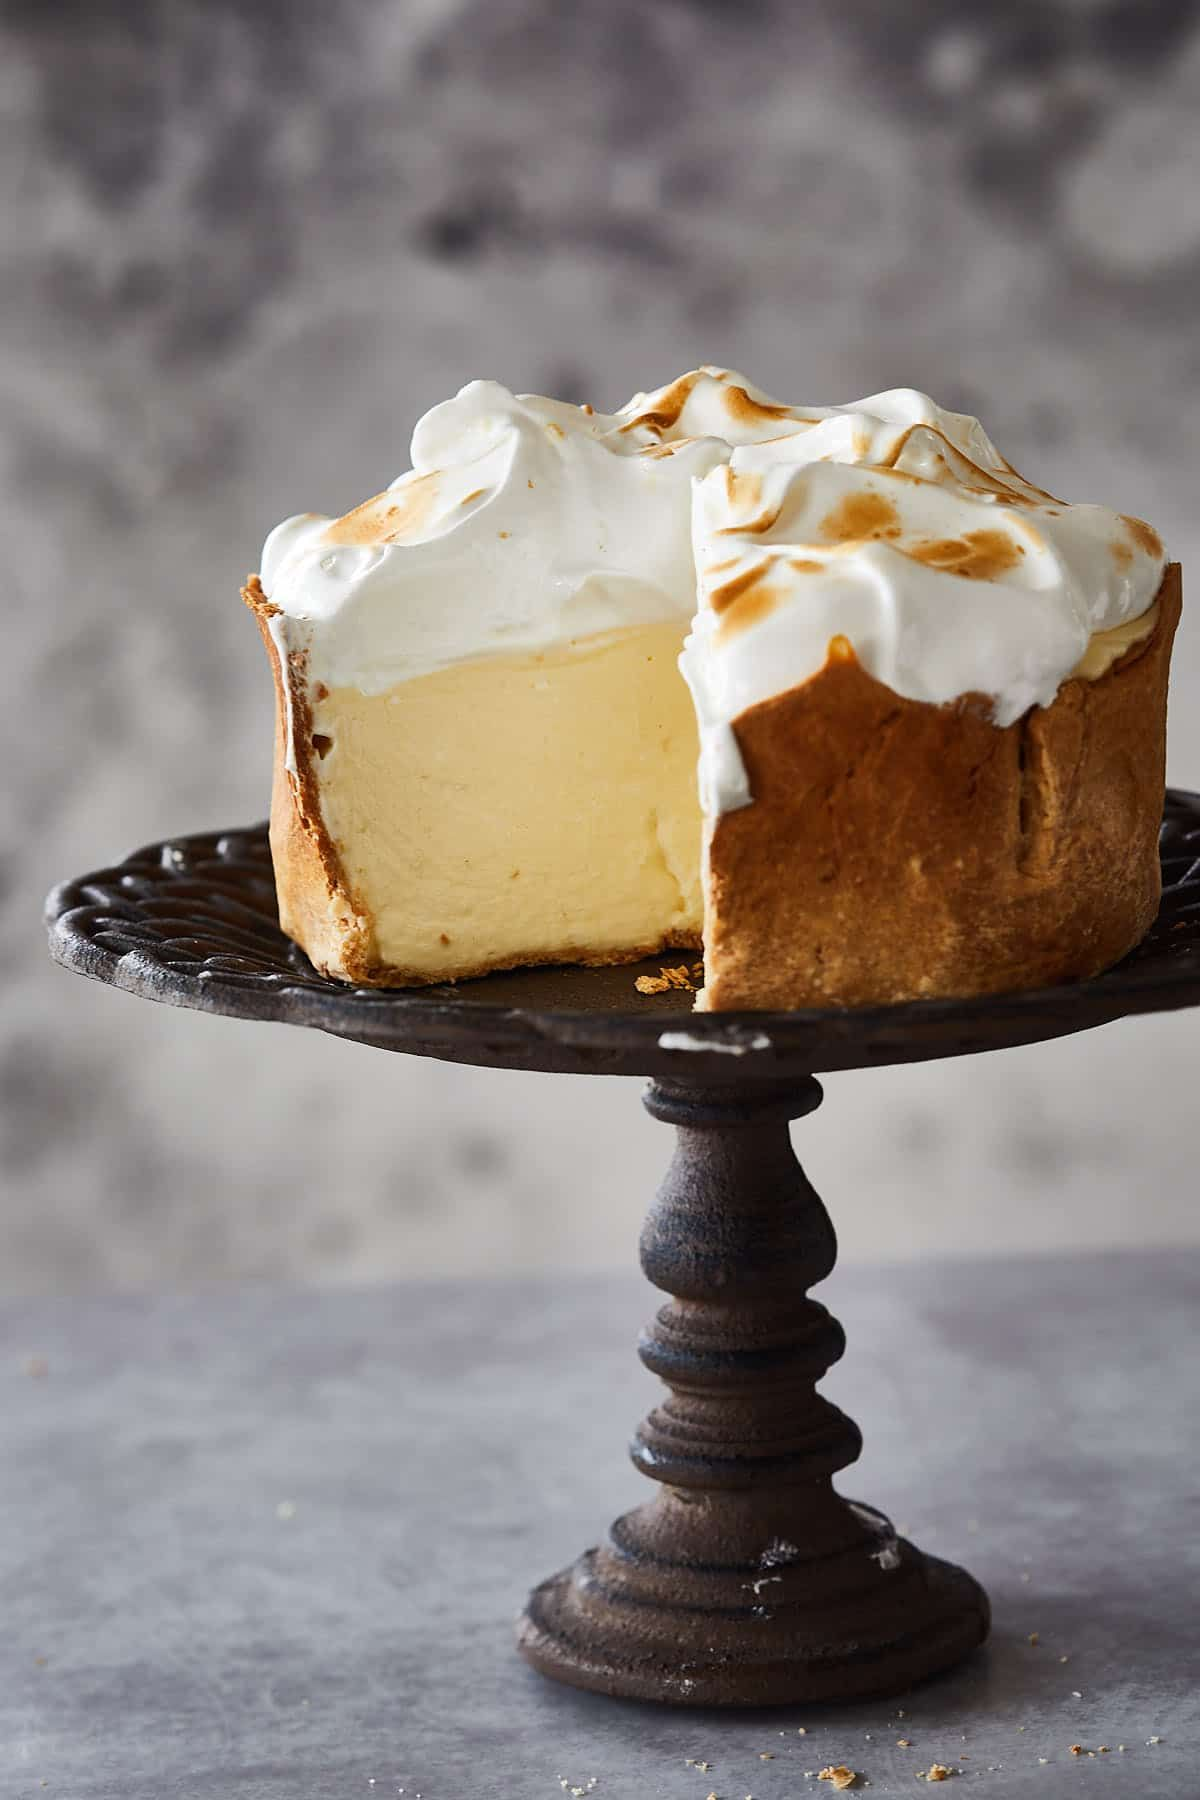 Photo of Lemon meringue cheesecake